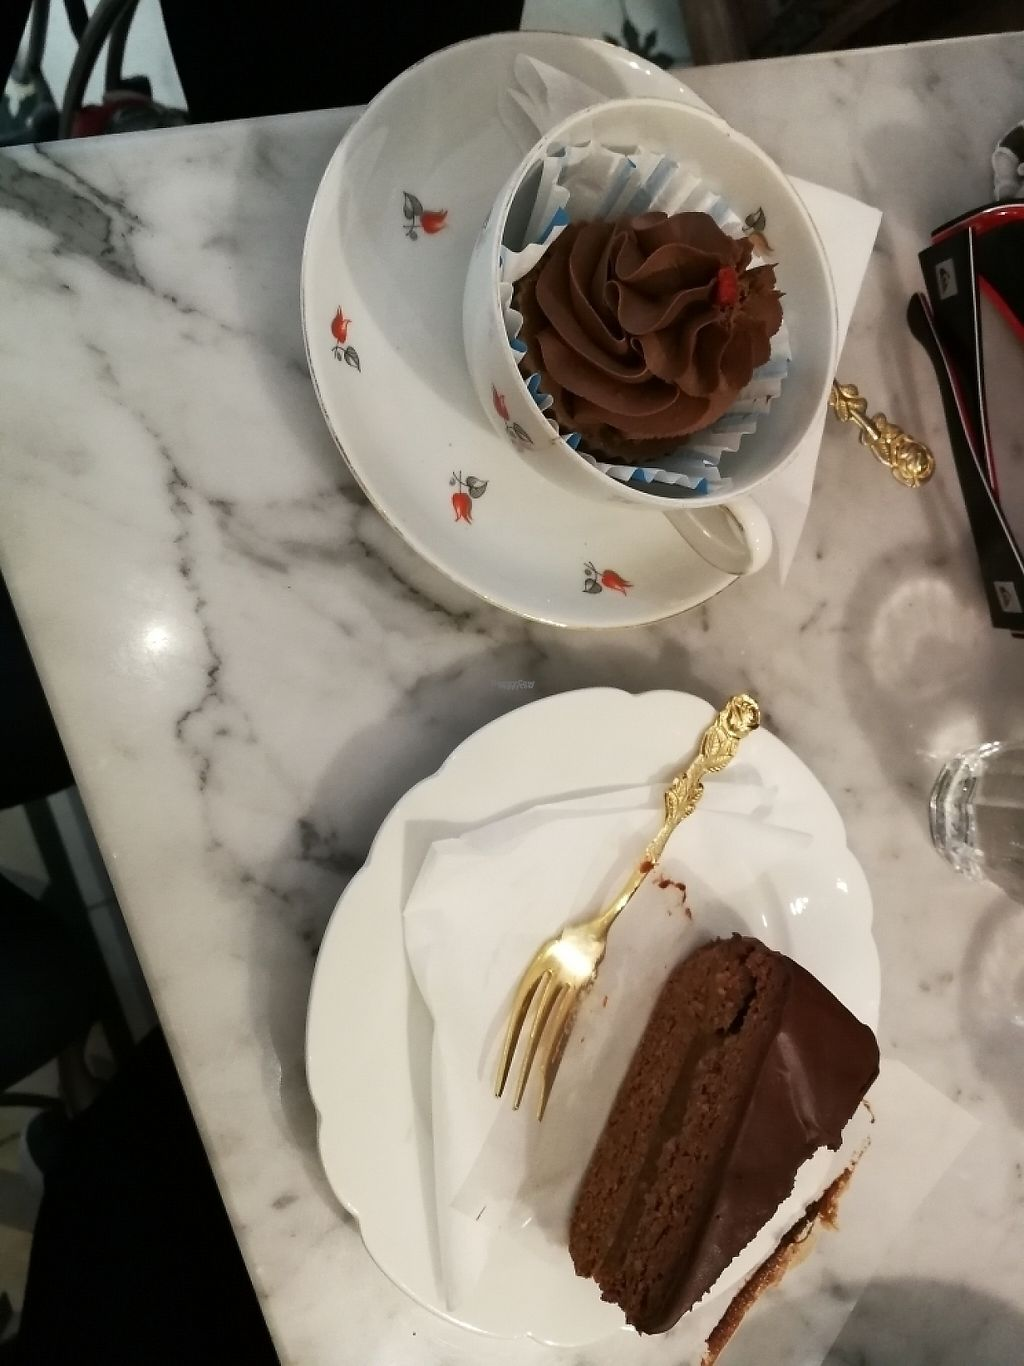 """Photo of Simply Raw Bakery and Bistro  by <a href=""""/members/profile/girltriesvegan"""">girltriesvegan</a> <br/>vegan cupcake and sachertorte <br/> April 18, 2017  - <a href='/contact/abuse/image/35149/249703'>Report</a>"""